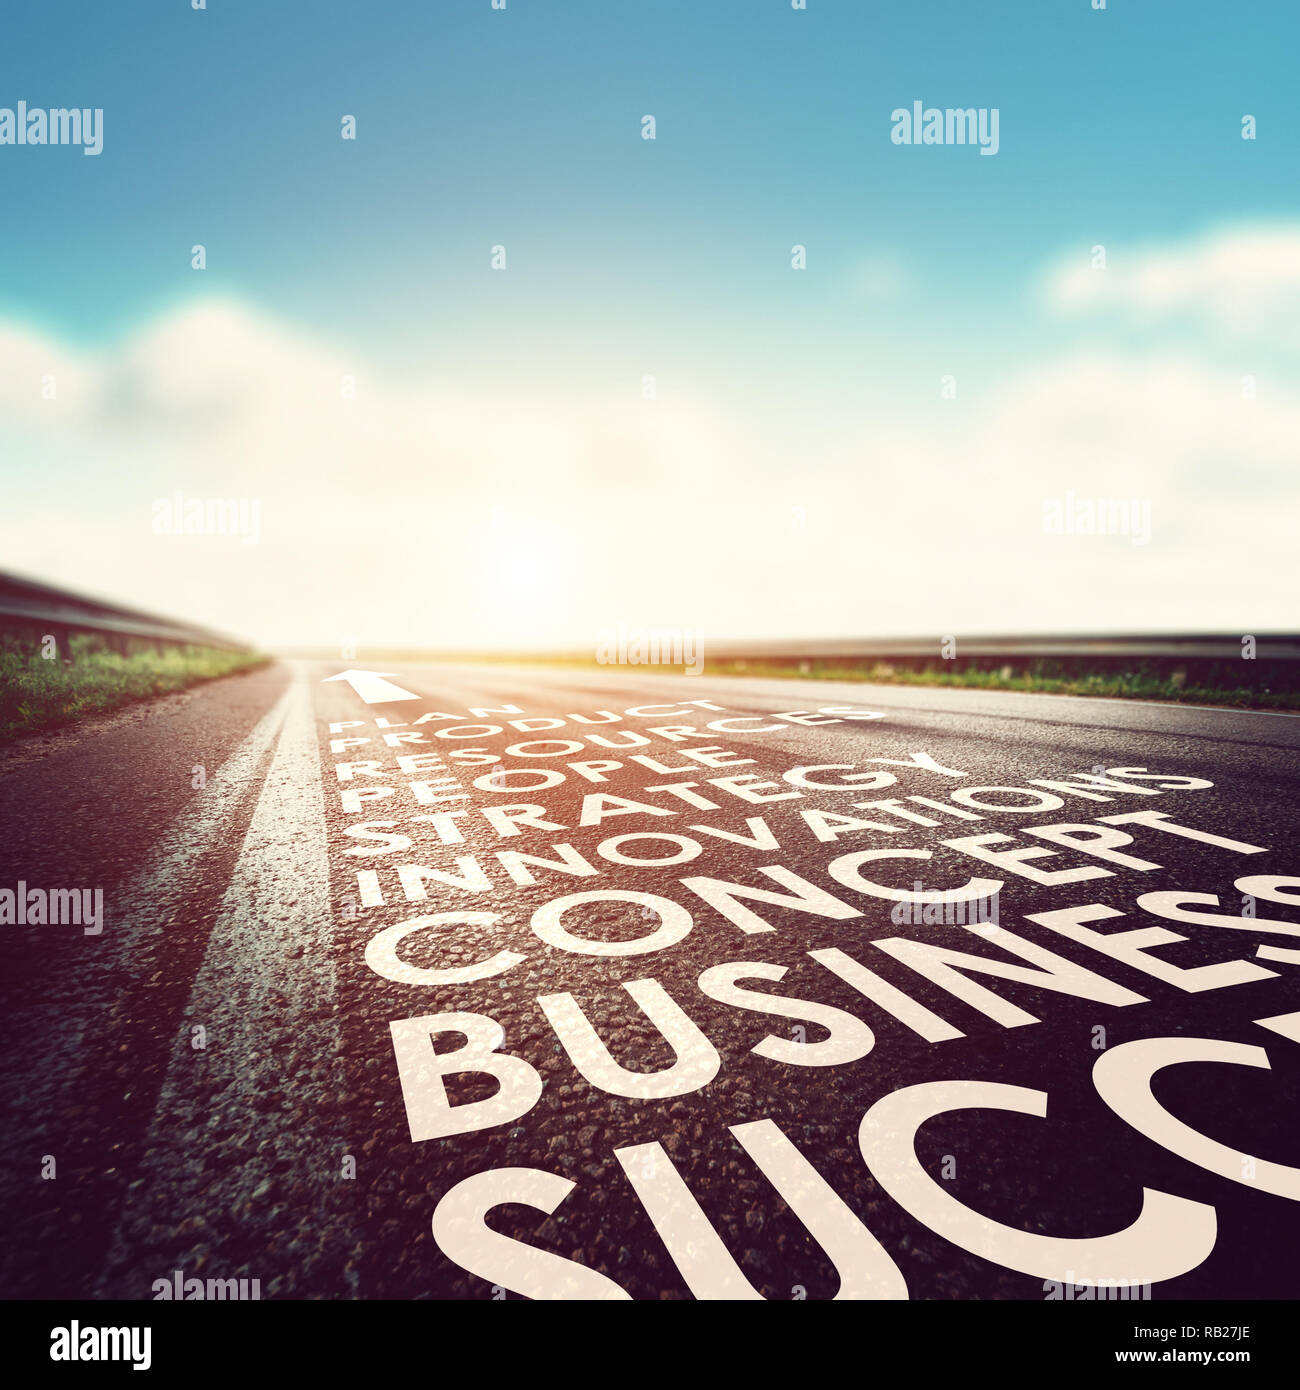 Business success concept - Stock Image